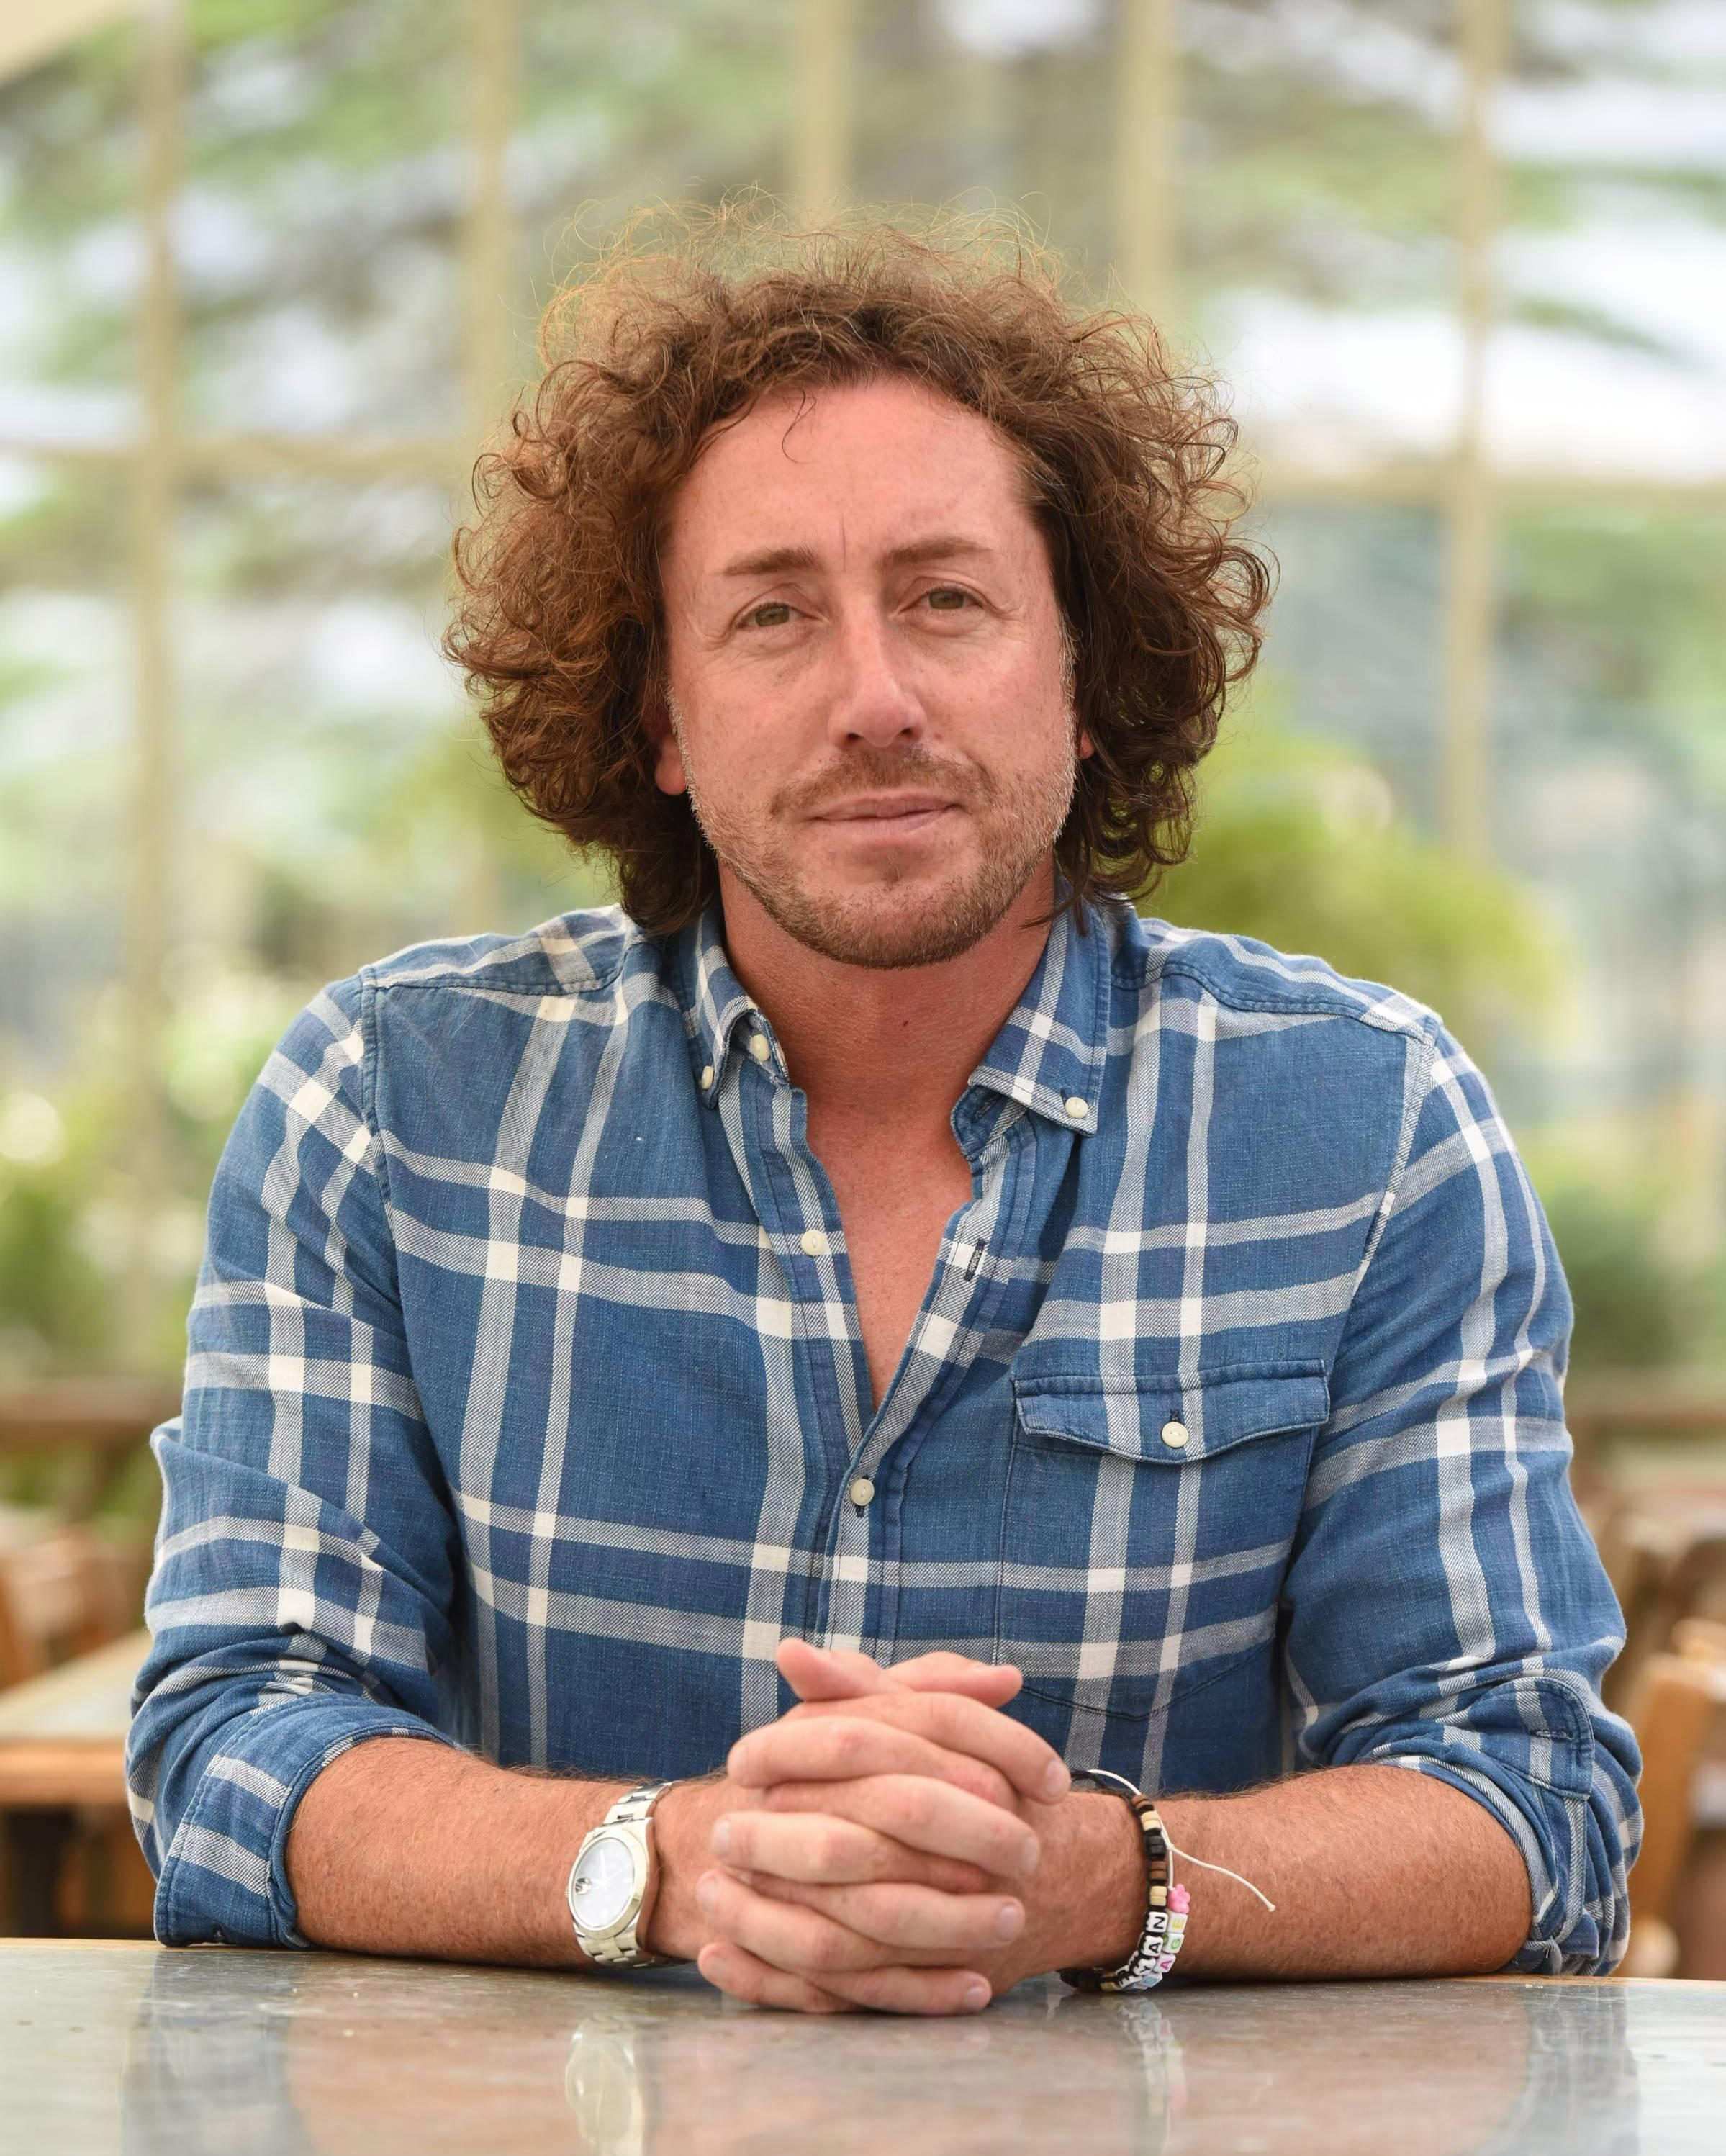 Ryan Sidebottom reveals the severe anxiety he has suffered since retiring last year